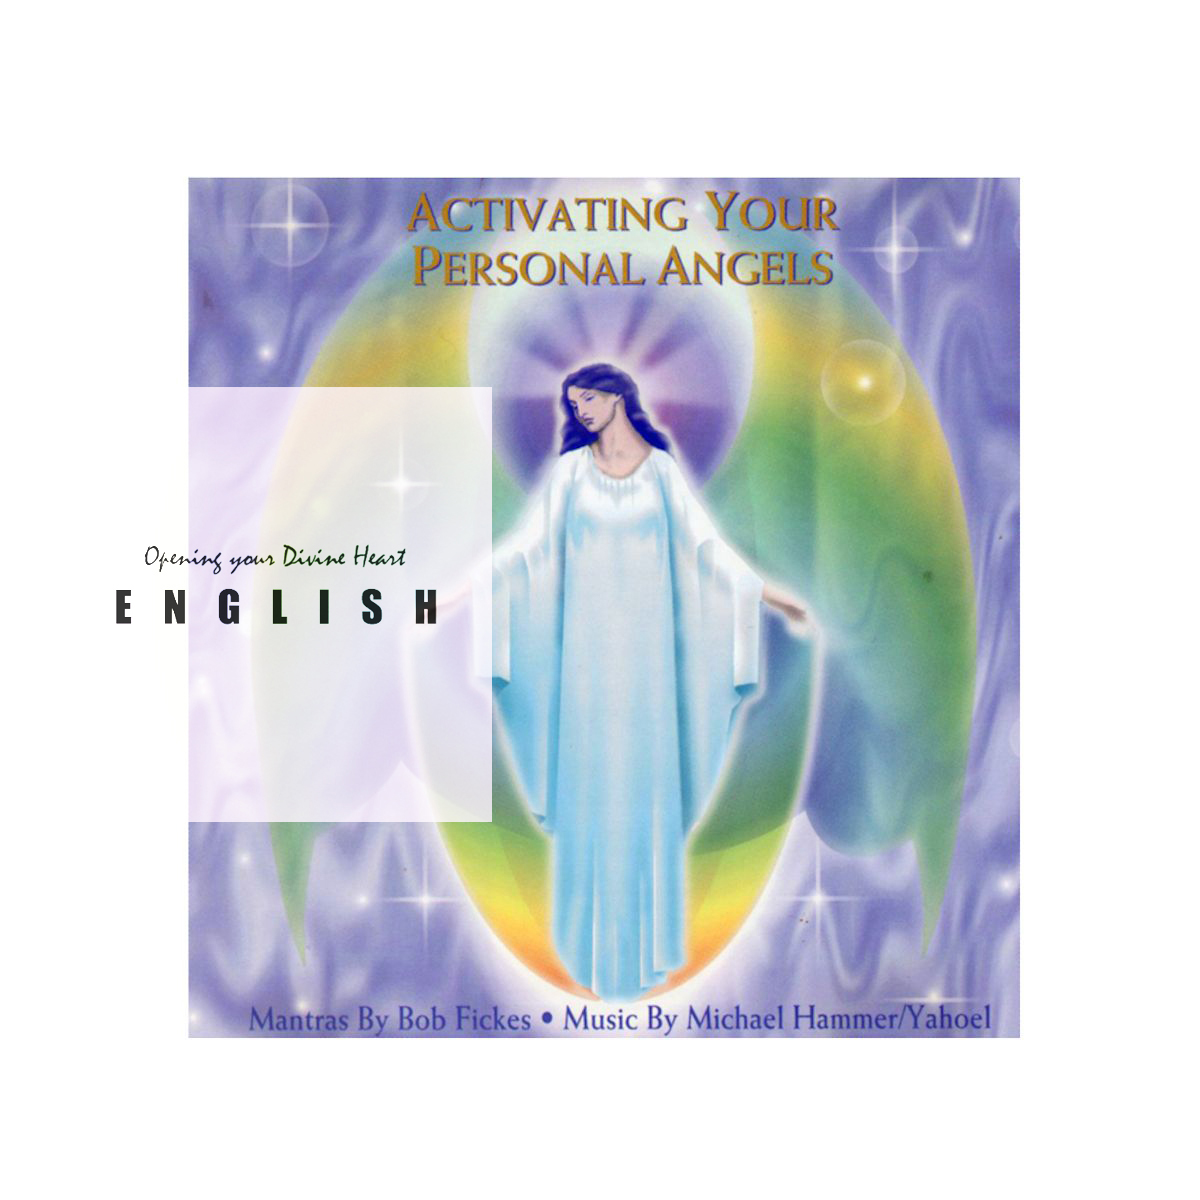 ACTIVATING YOUR PERSONAL ANGELS - Meditation CD